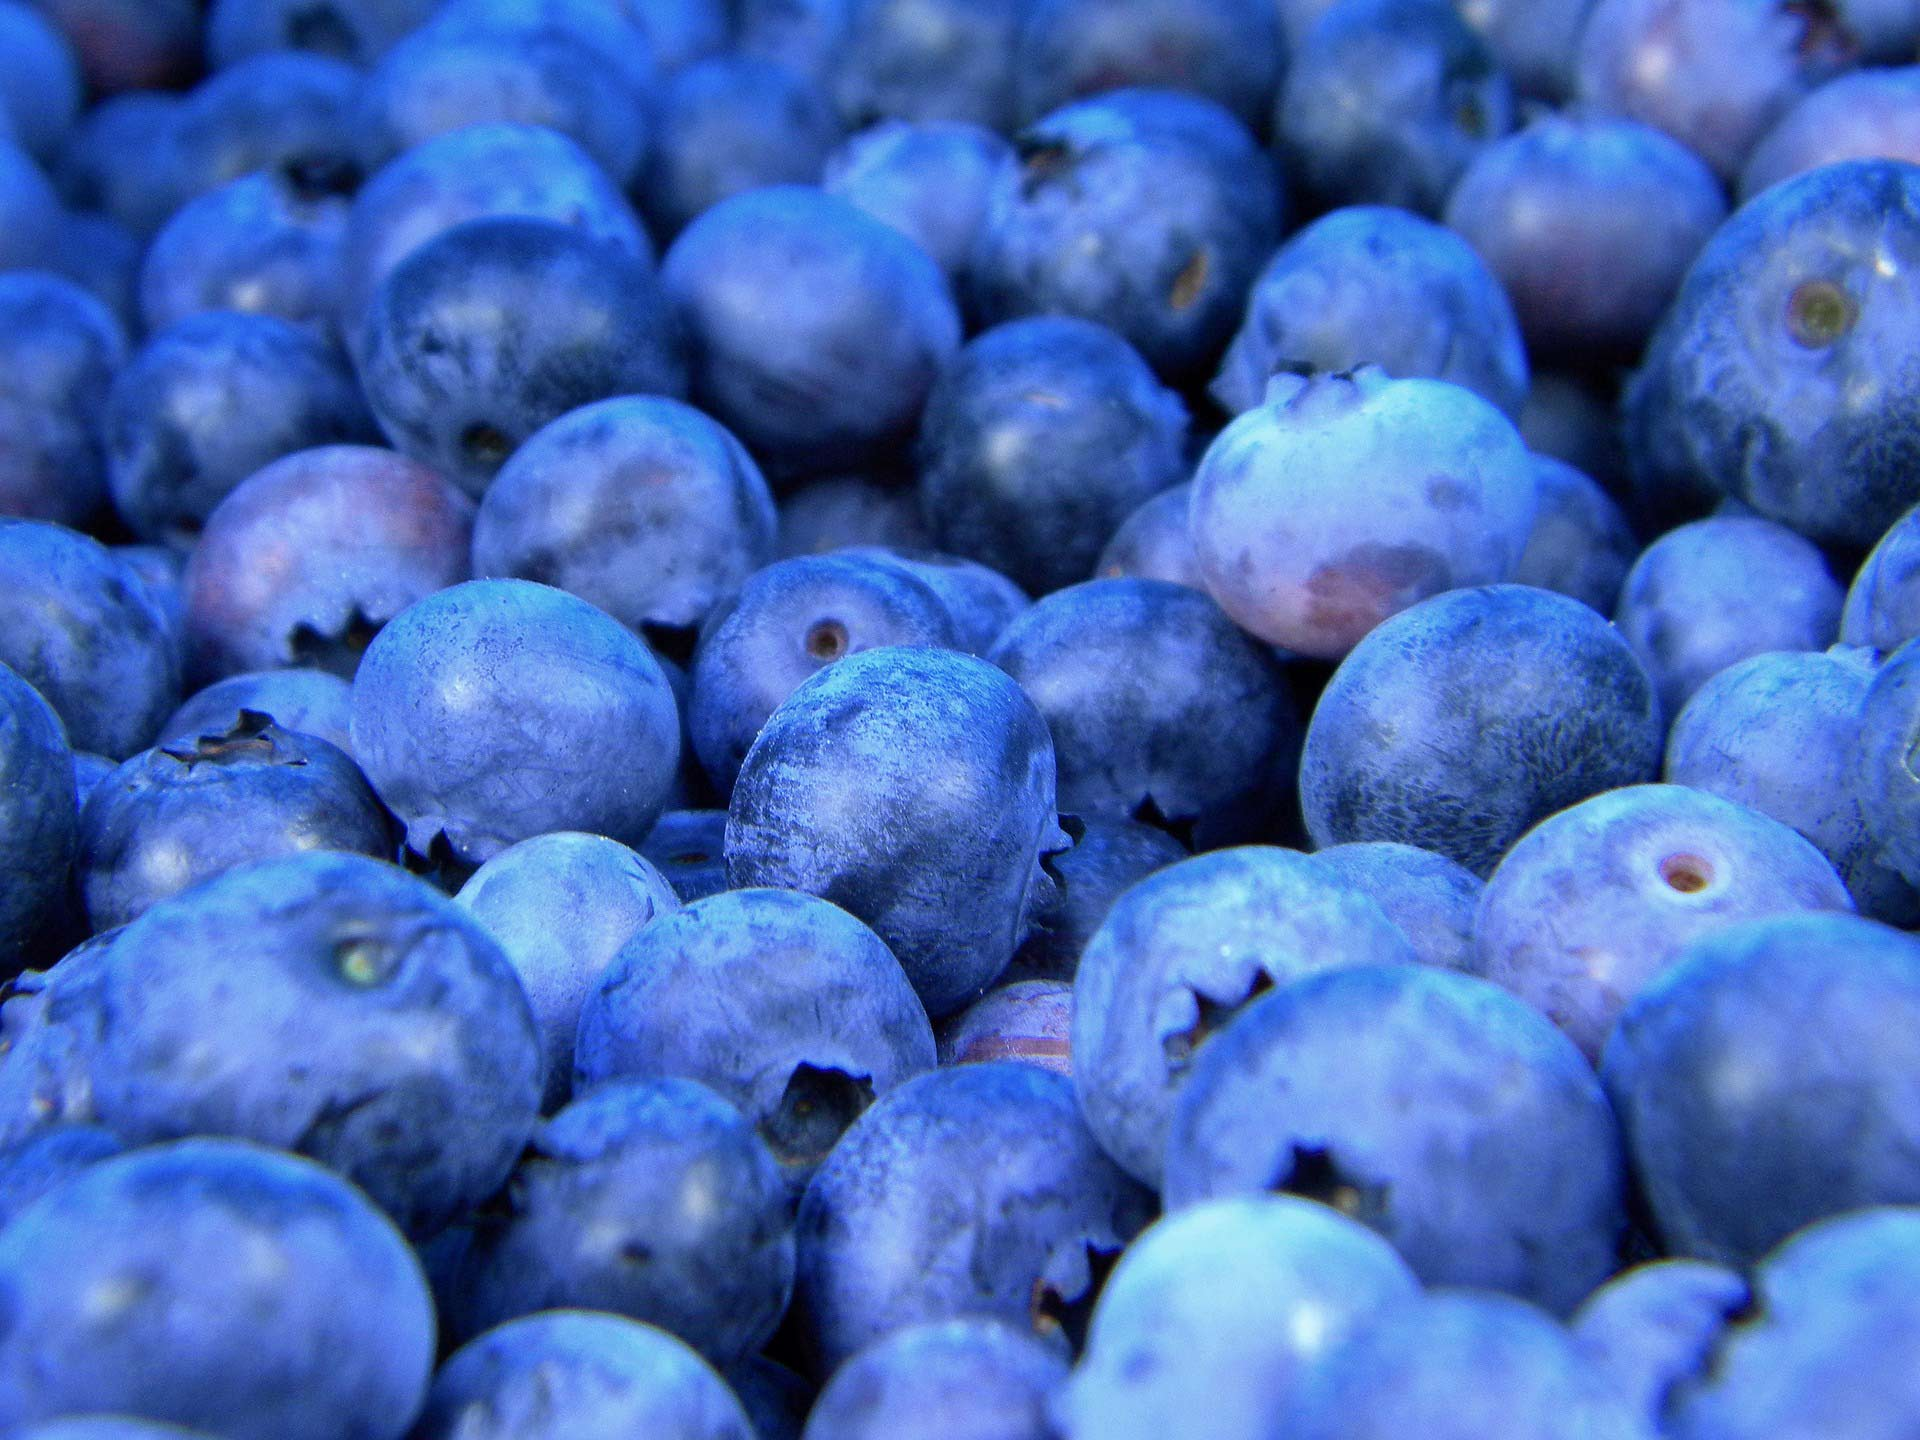 Blueberry Anthocyanins May Reduce Blood Pressure ...